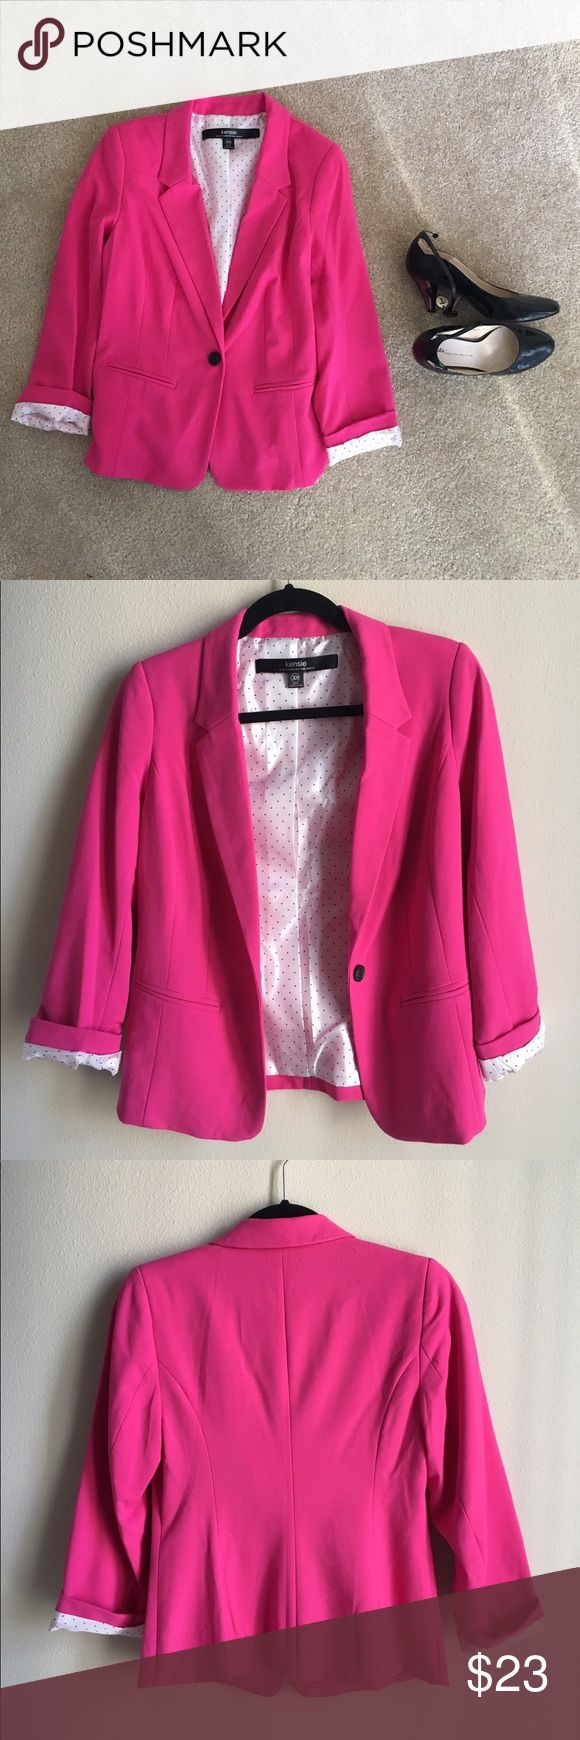 Hot pink blazer Very special blazer with hot pink color. Interior with cute dots. I loved wearing it, especially with the sleeve rolled up. It's pretty light and good for spring/summer weather. It was hard to find the perfect match at the beginning. But after you do, it will earn you a lot of compliments. Only worn twice. Excellent condition! Kensie Jackets & Coats Blazers